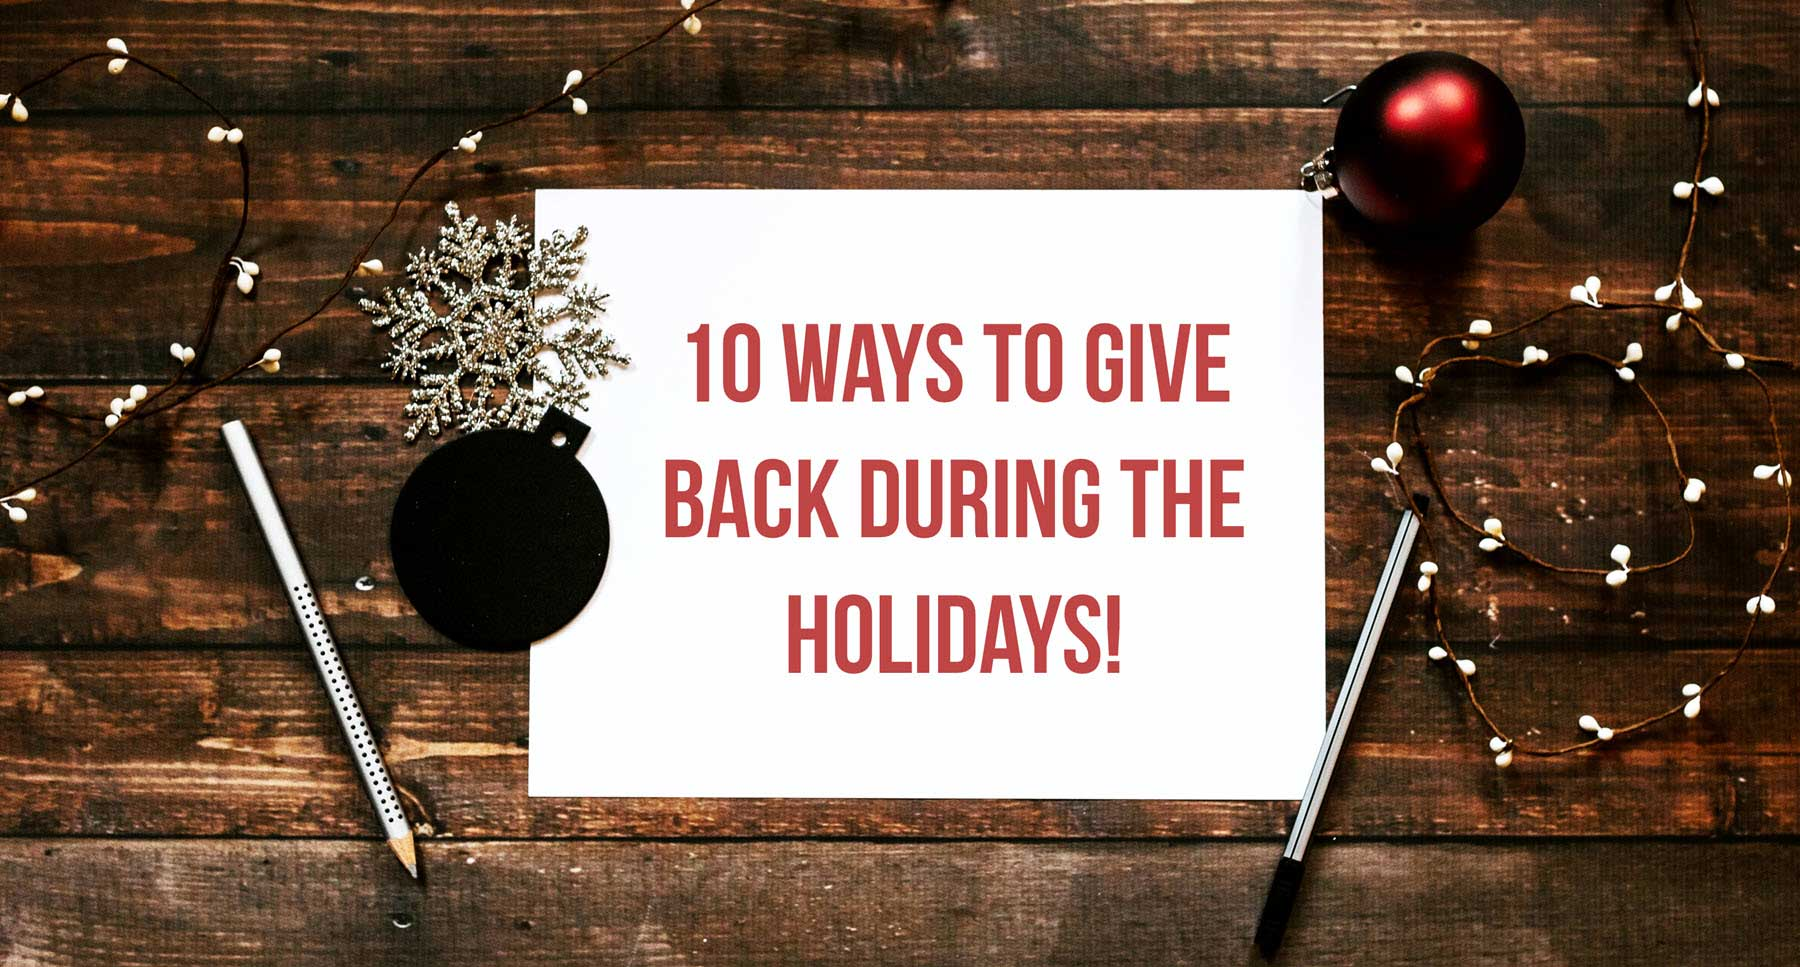 10-Ways-to-Give-Back-During-the-Holidays-Ideas-to-help-others-at-Christmas-self-care-checklists-thehopeline